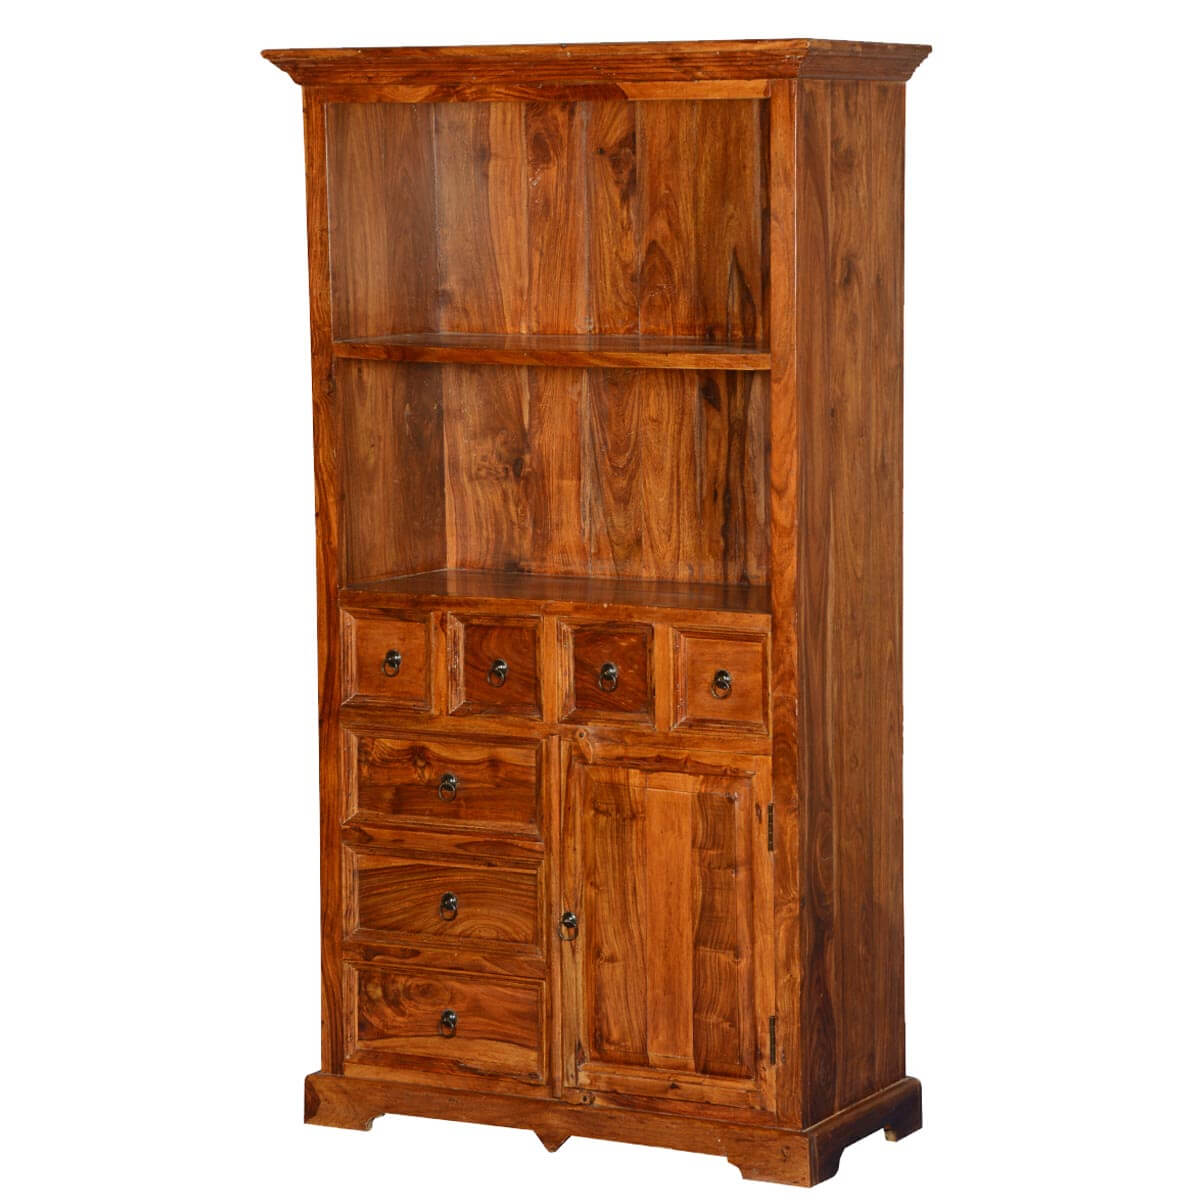 Gainesville 2 Open Shelf Rustic Wood Bookcase With Doors & Drawers